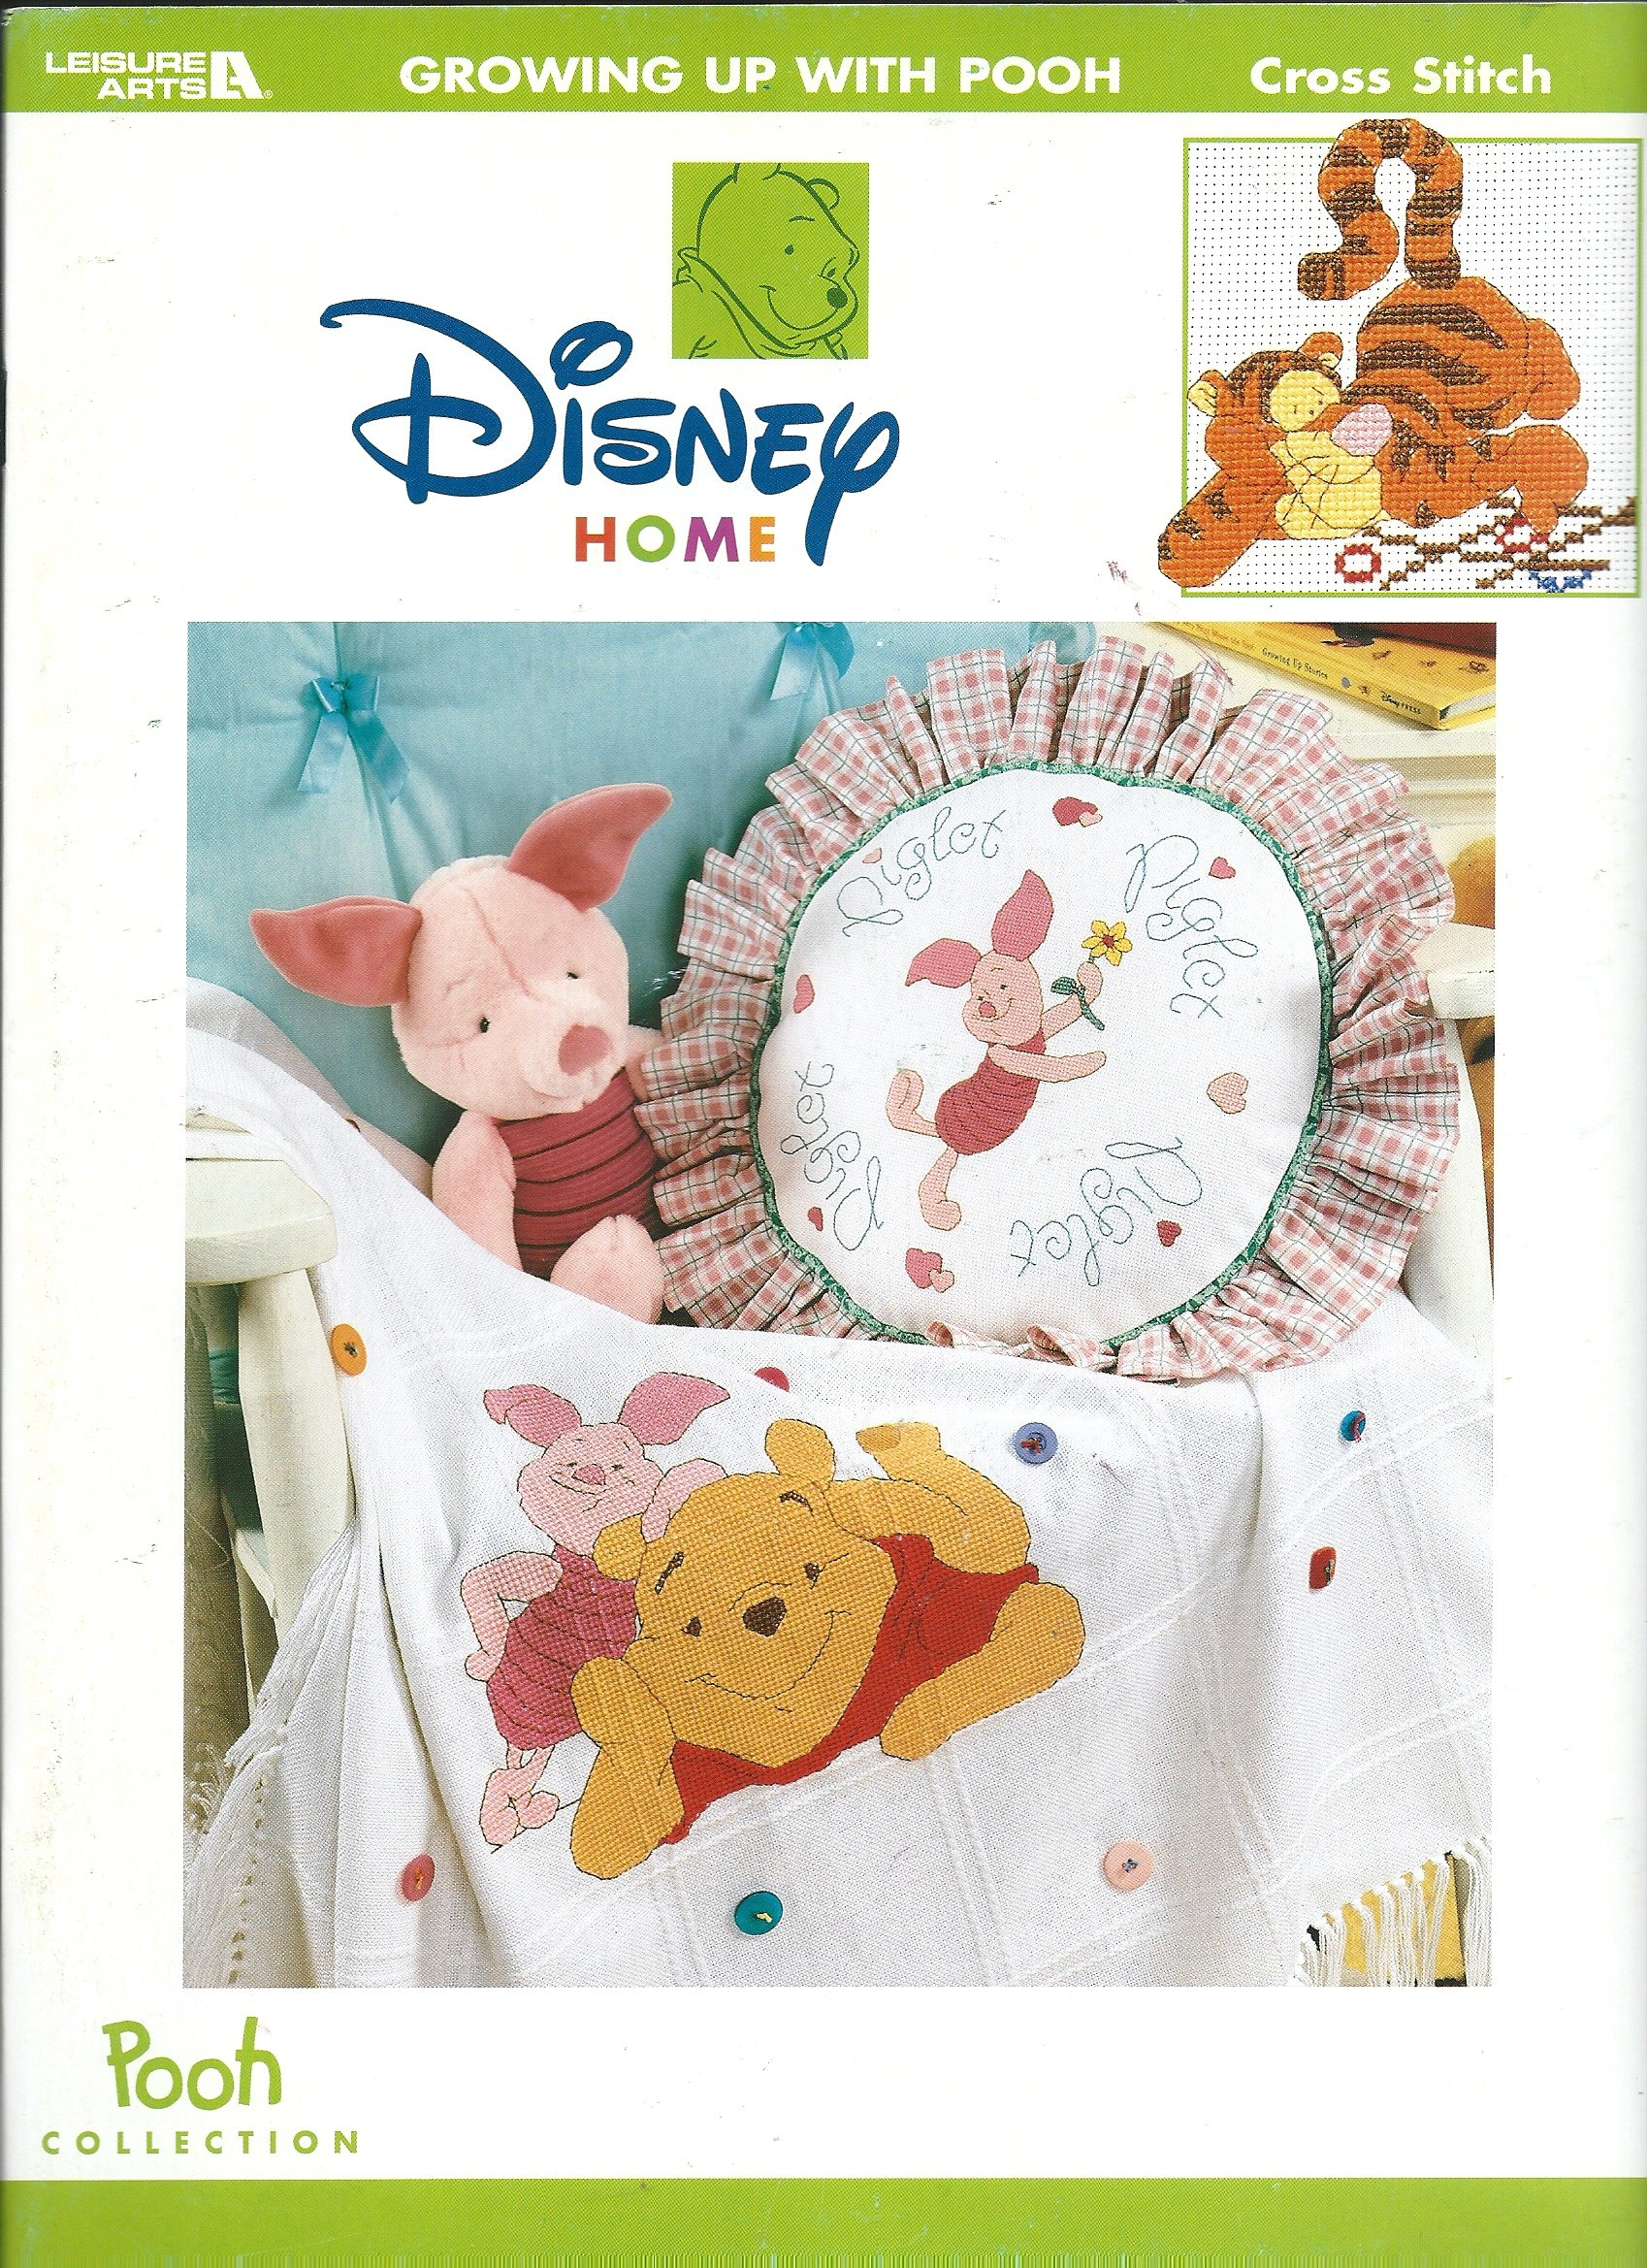 Disney Home: Growing Up with Pooh Cross Stitch (Leisure Arts Pooh Collection, 3343)